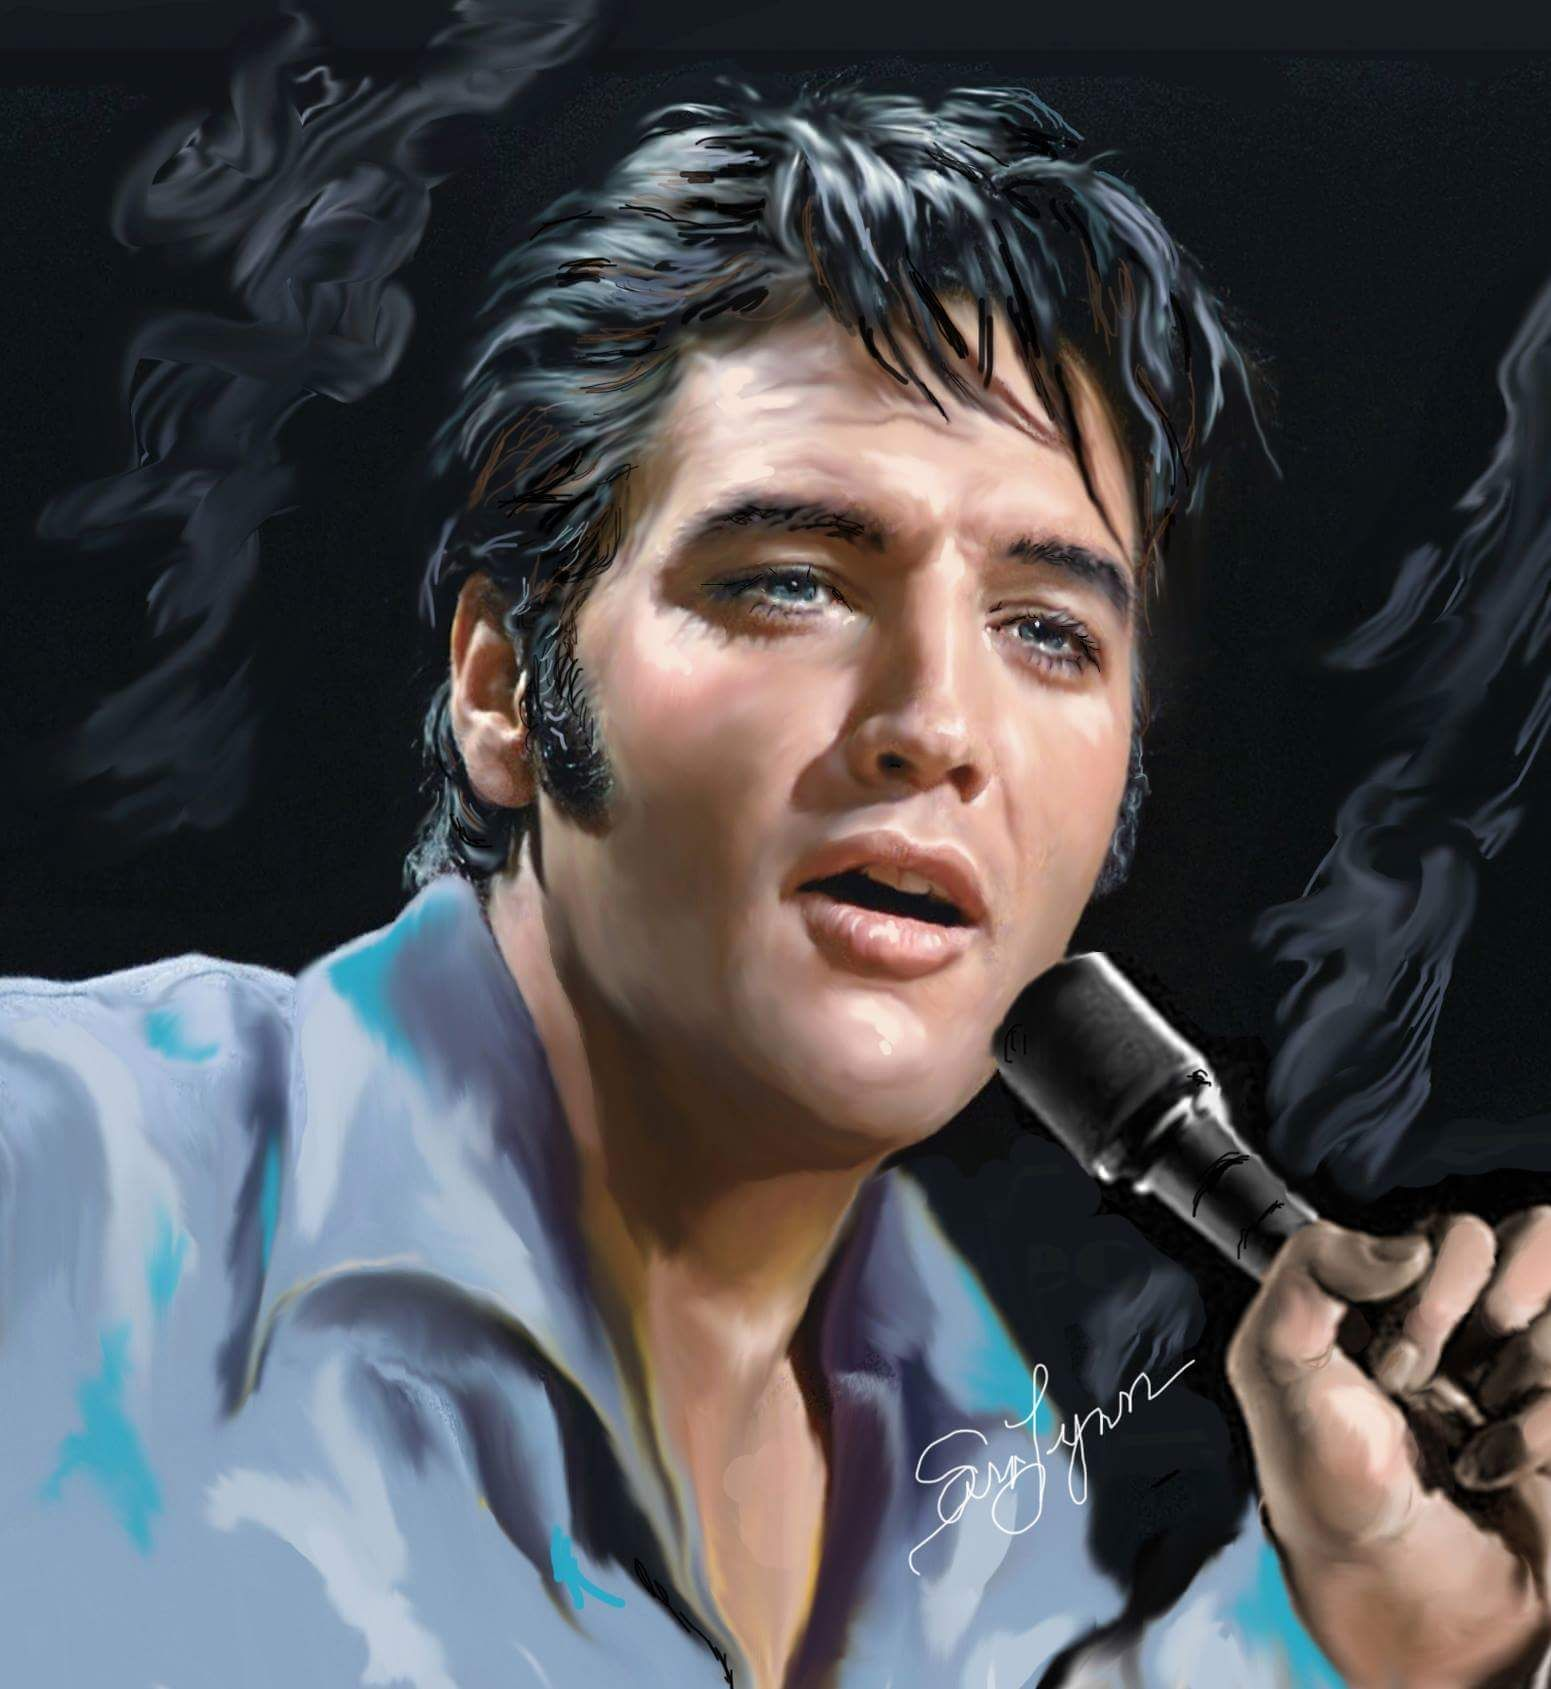 Elvis Aron Presley | Elvis Aron Presley, 8 Jan 1935 - 16 ...  |1977 Elvis Painting